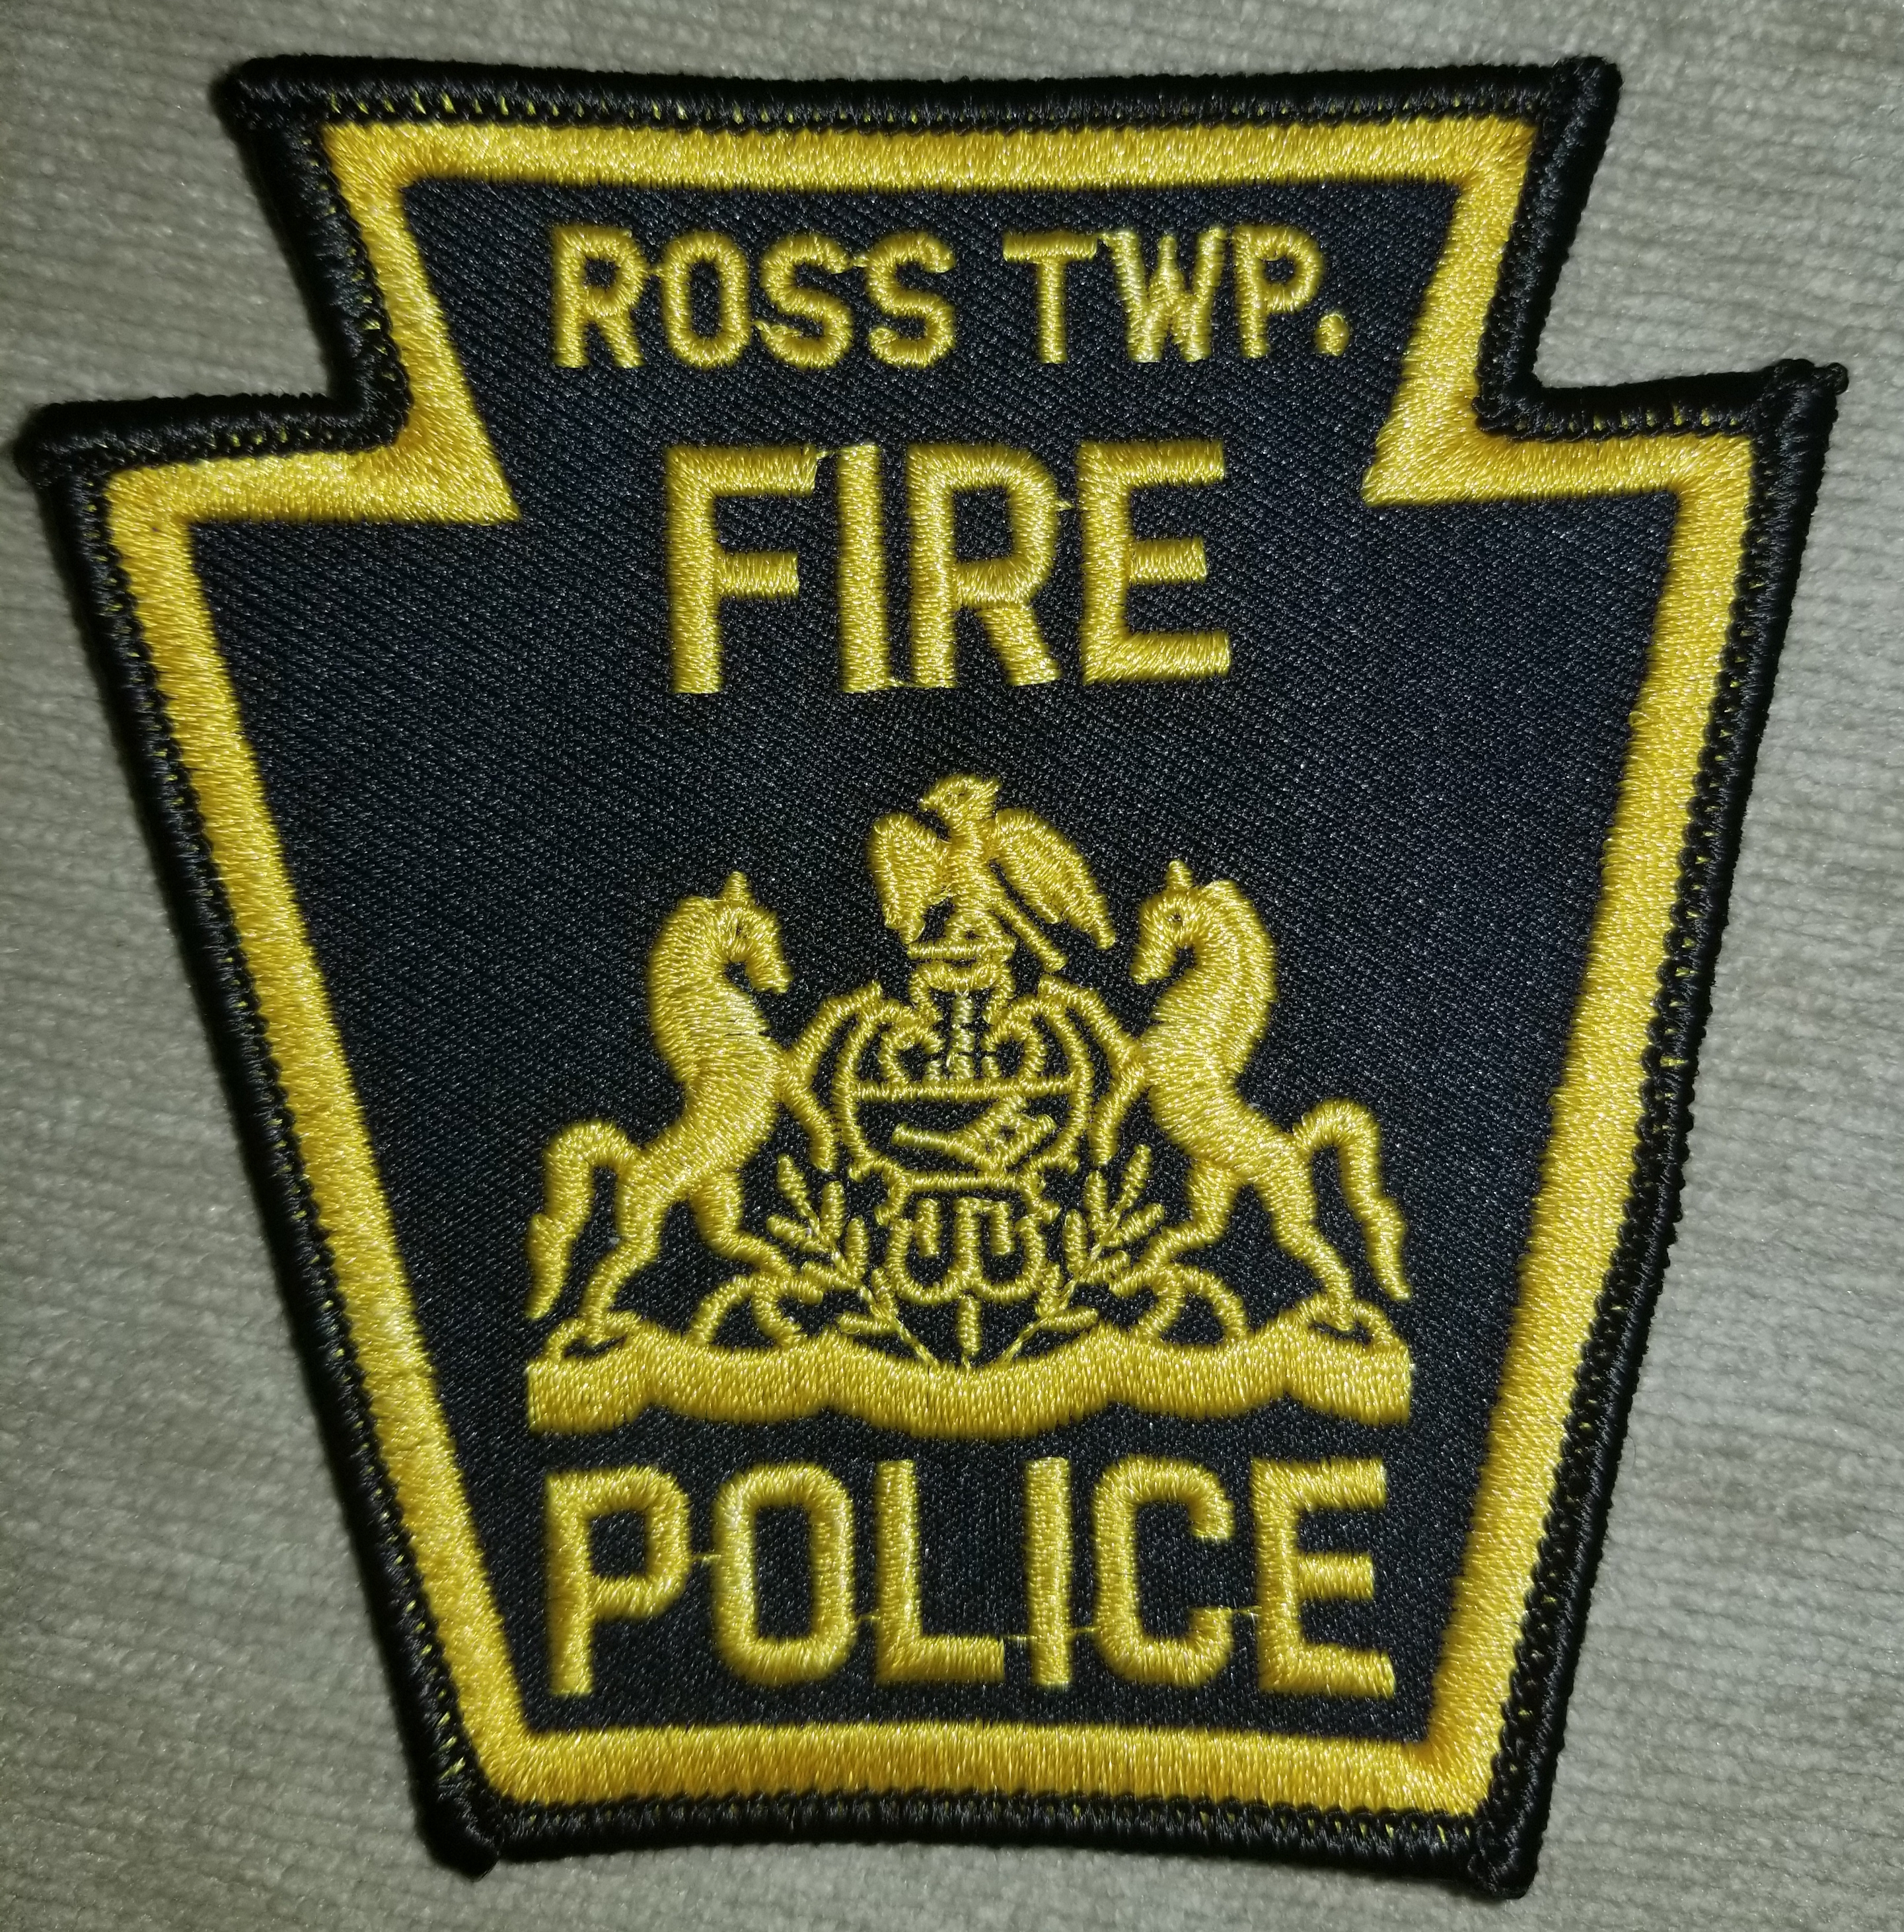 Ross Township Fire Police PA